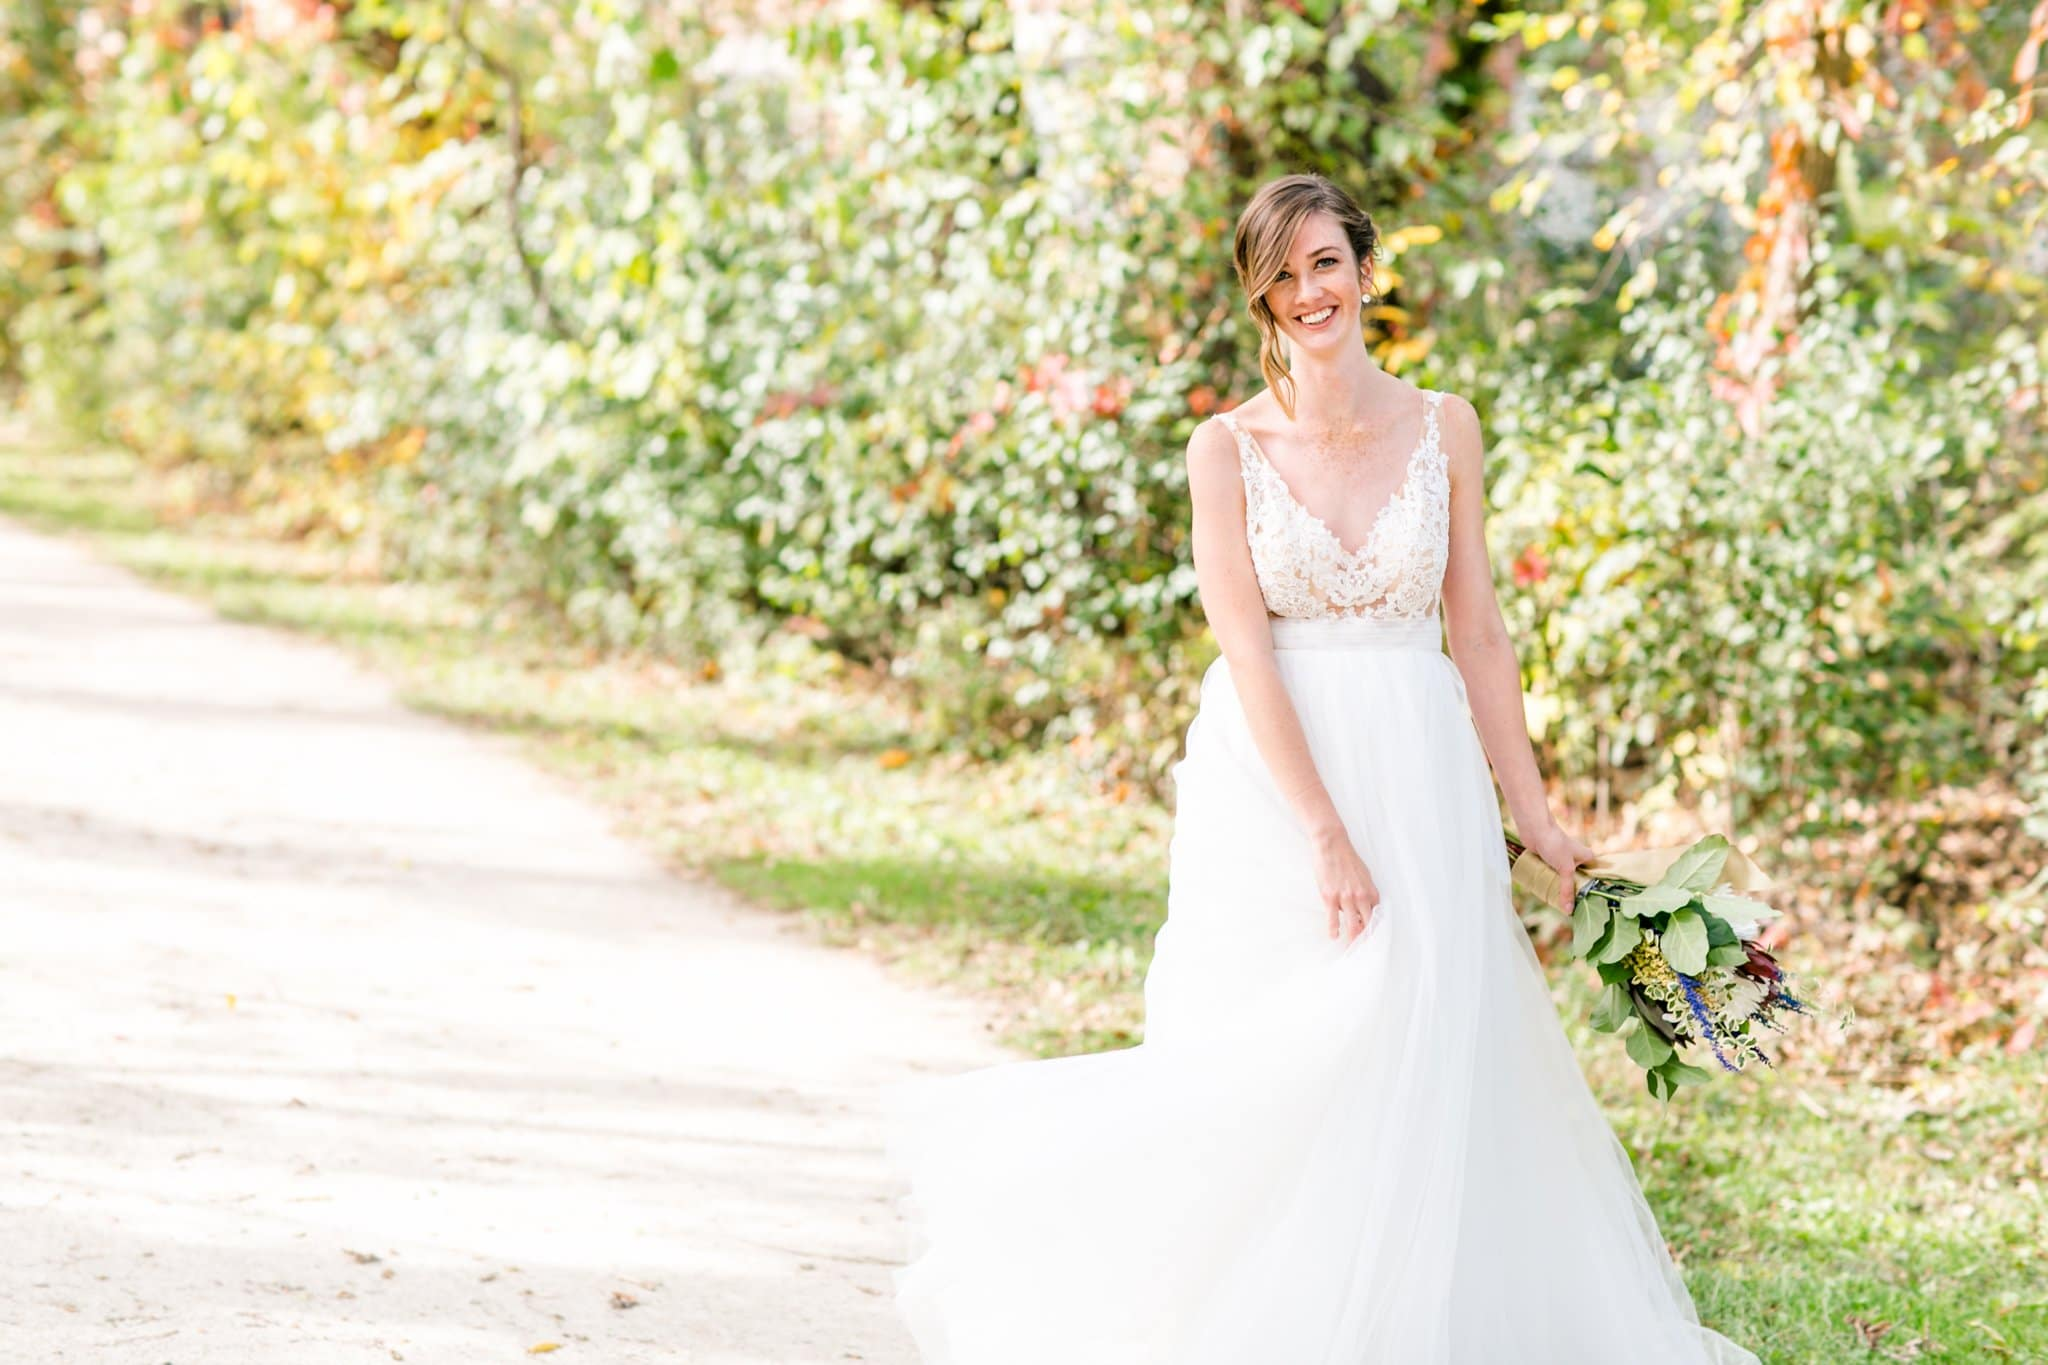 Gemma Dress - Sarah Crost Photography & Grace and Ivory